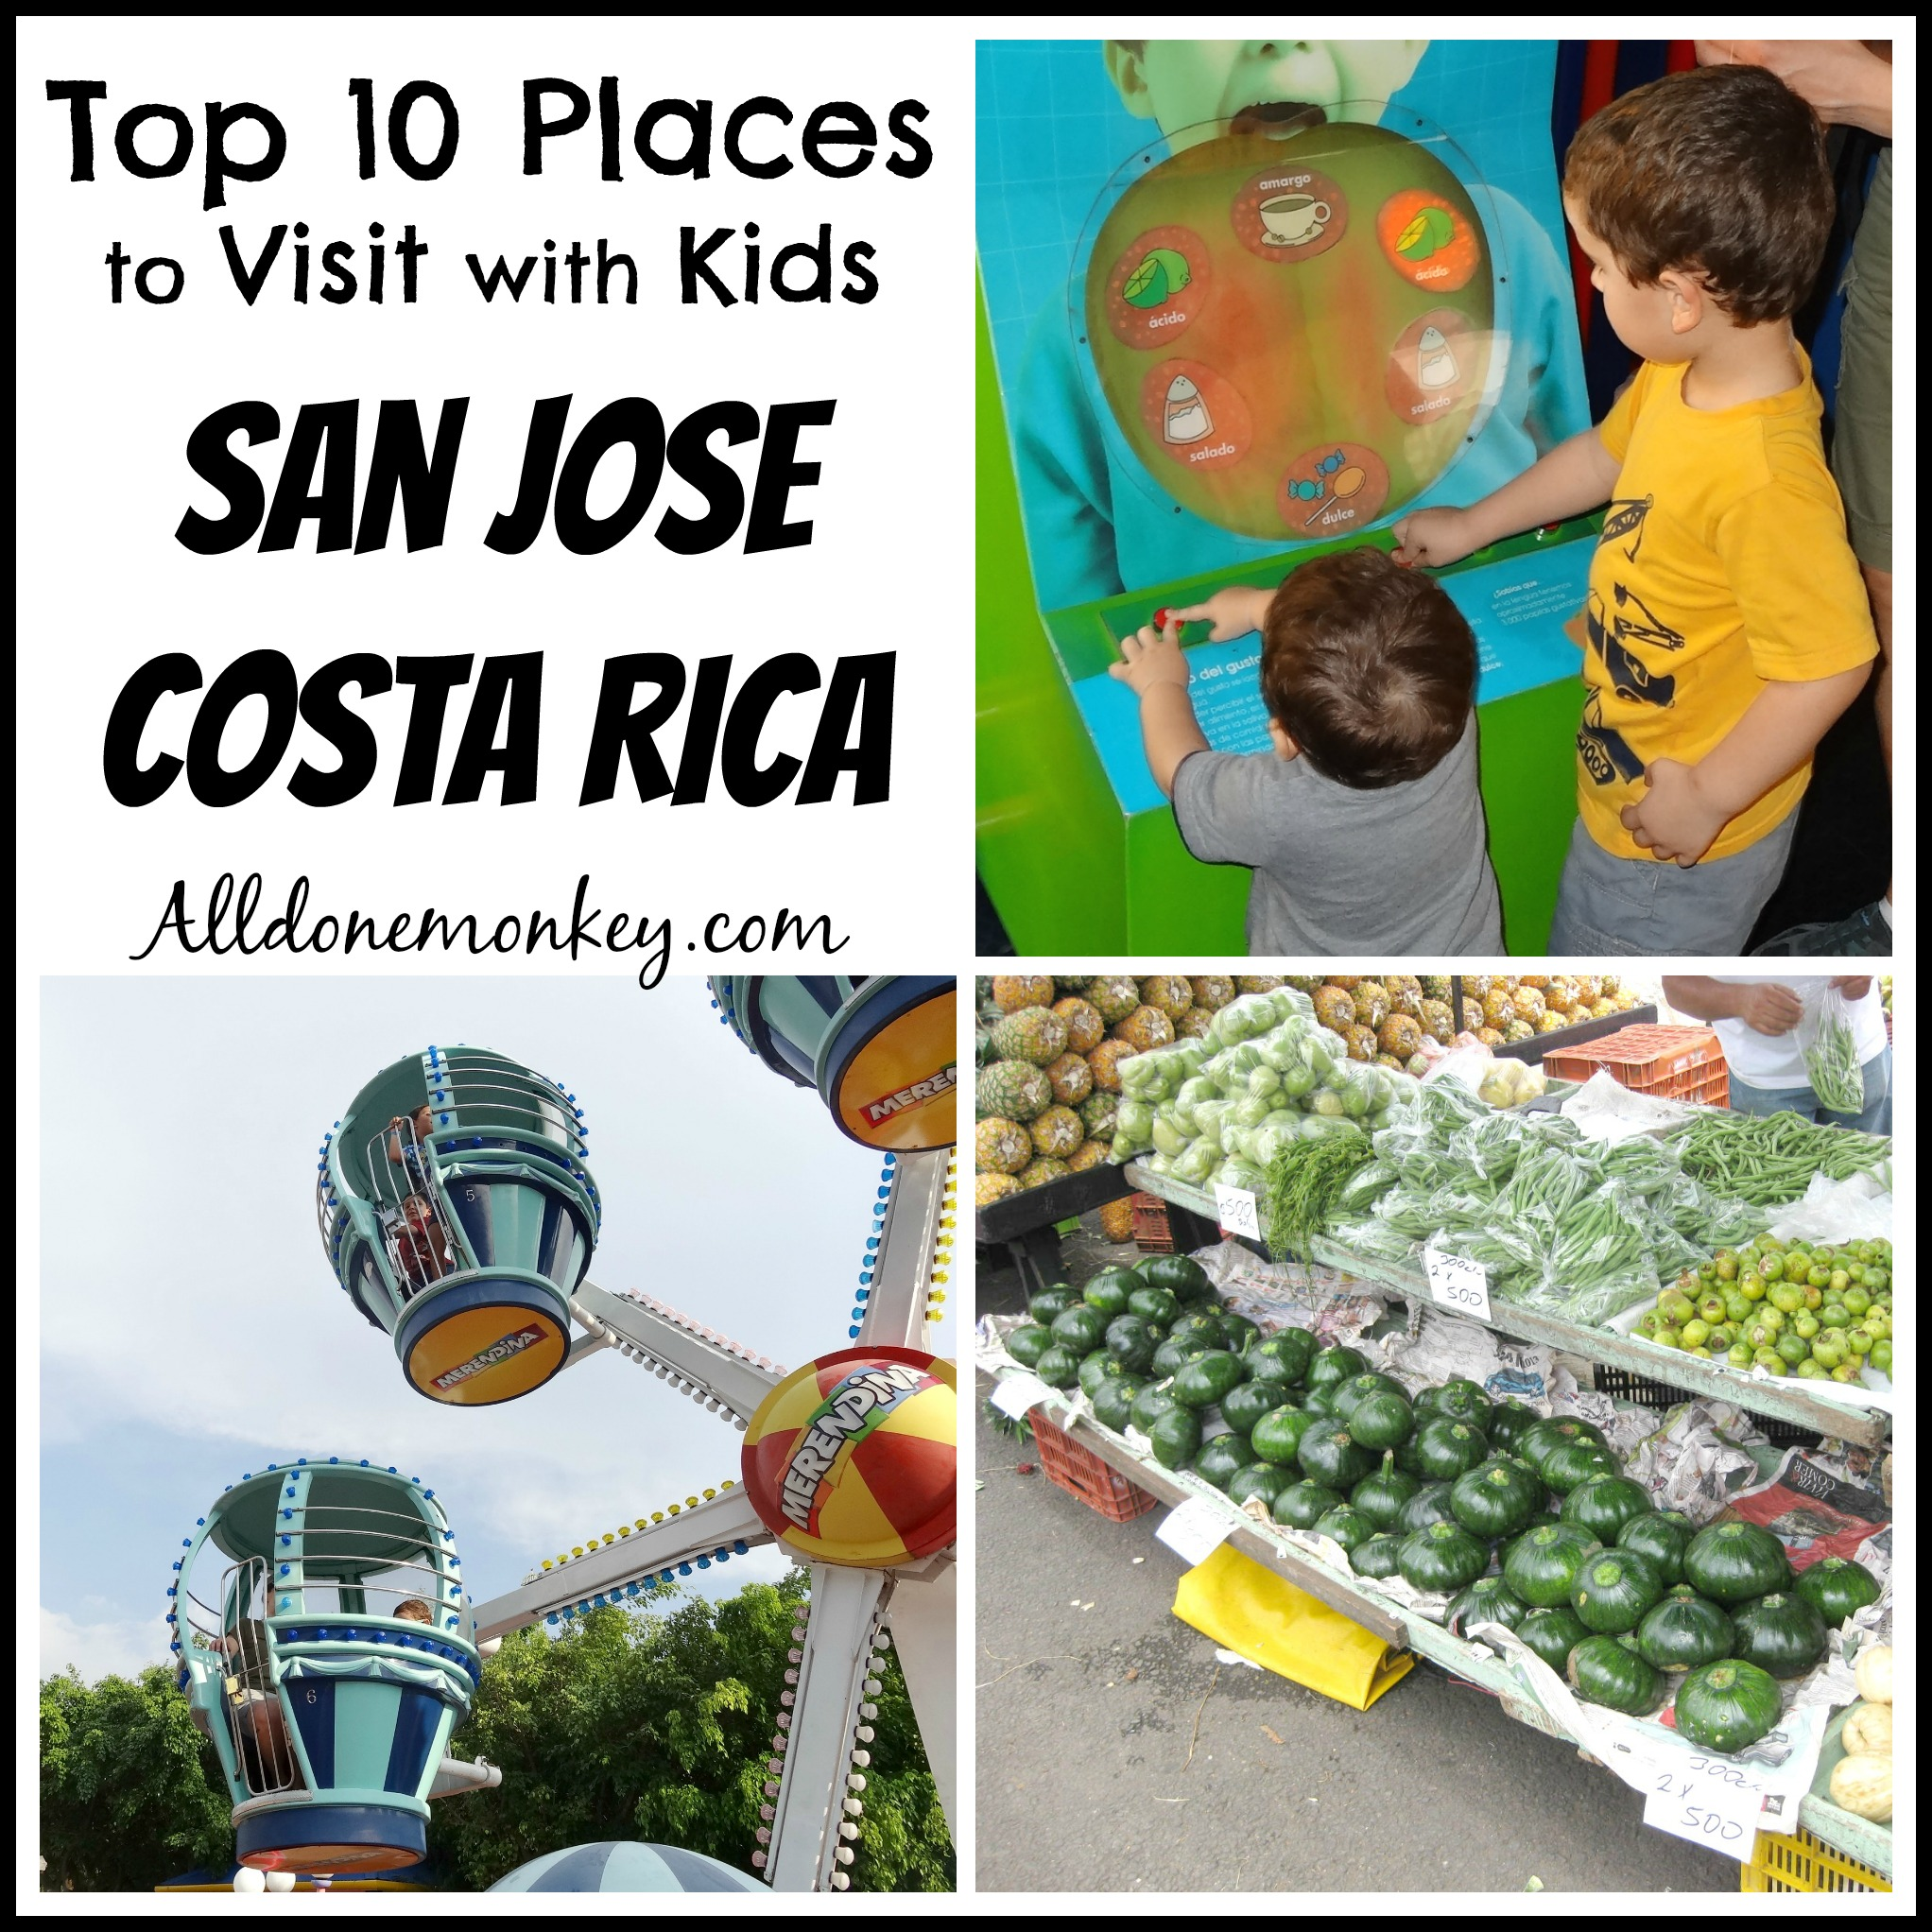 Top Ten Places to Visit with Kids in San Jose Costa Rica